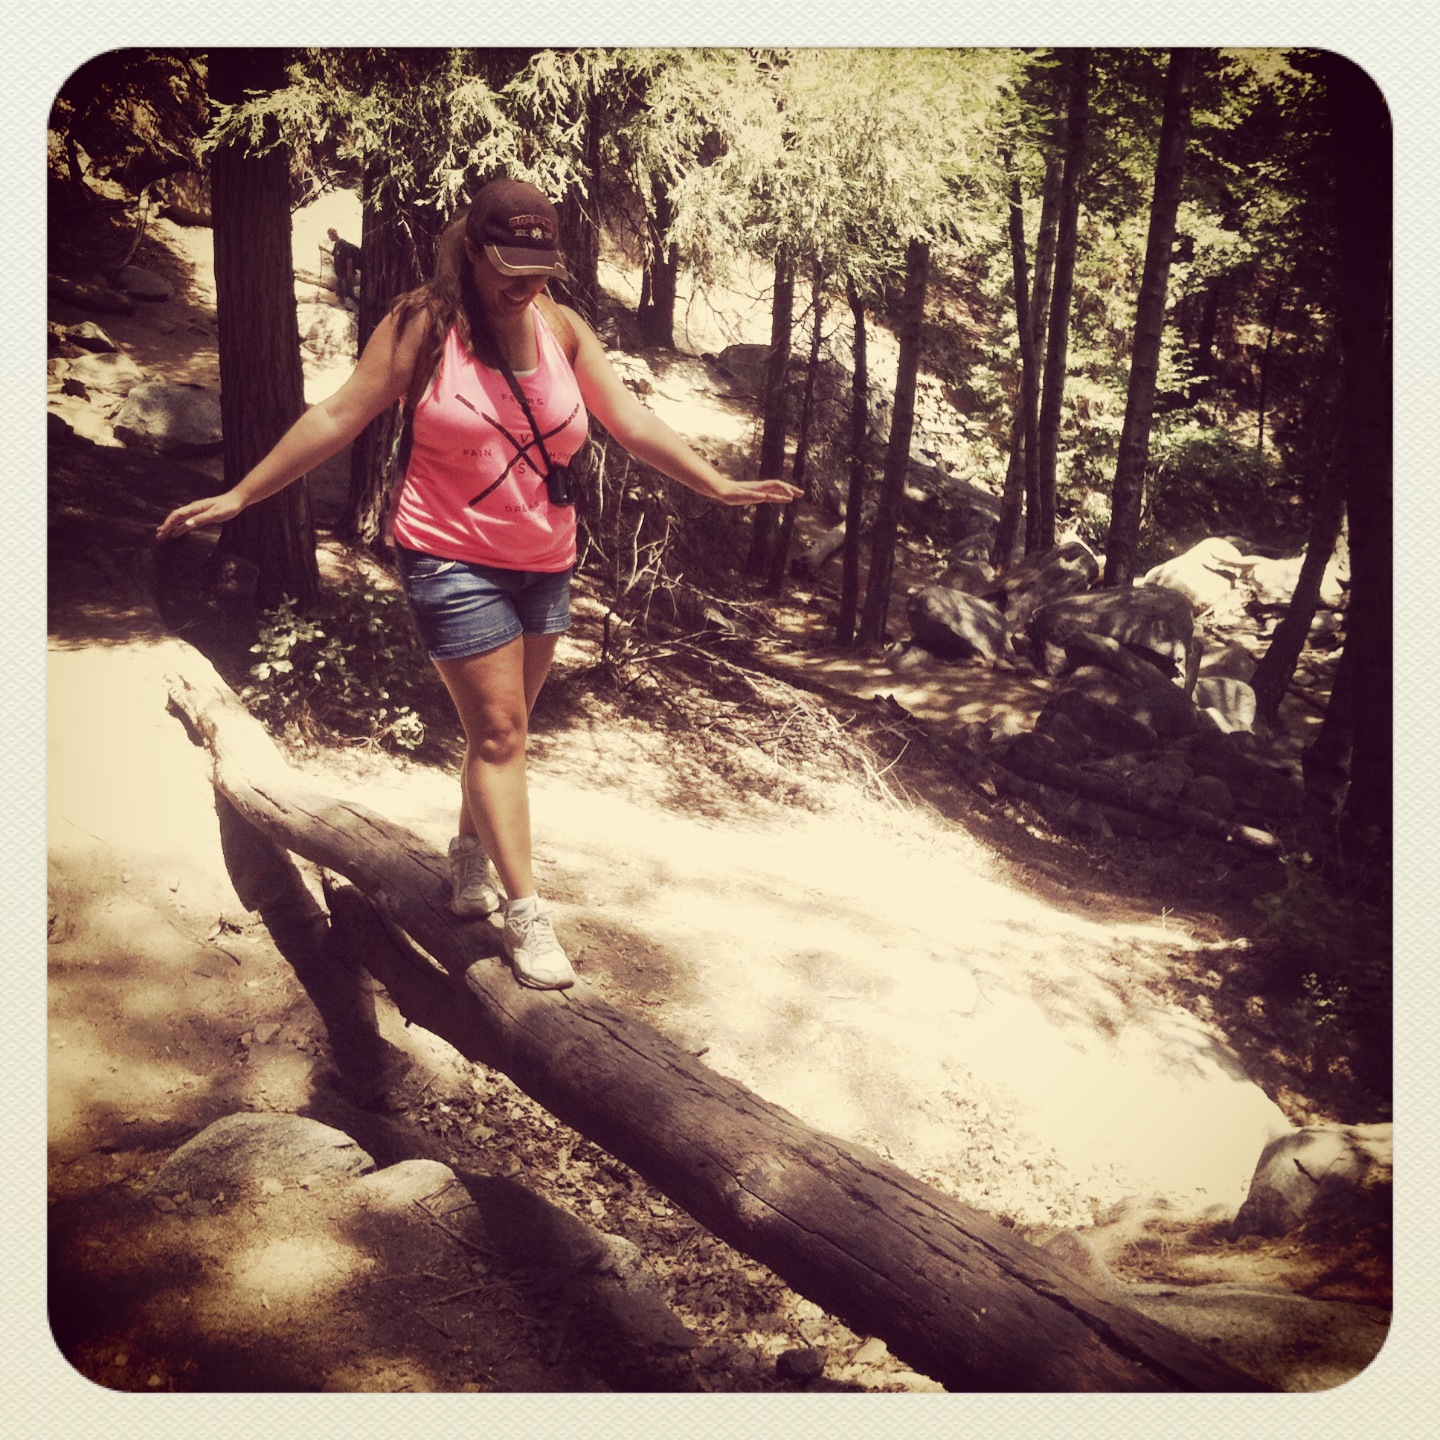 re-enacting Dirty Dancing on this log haha.